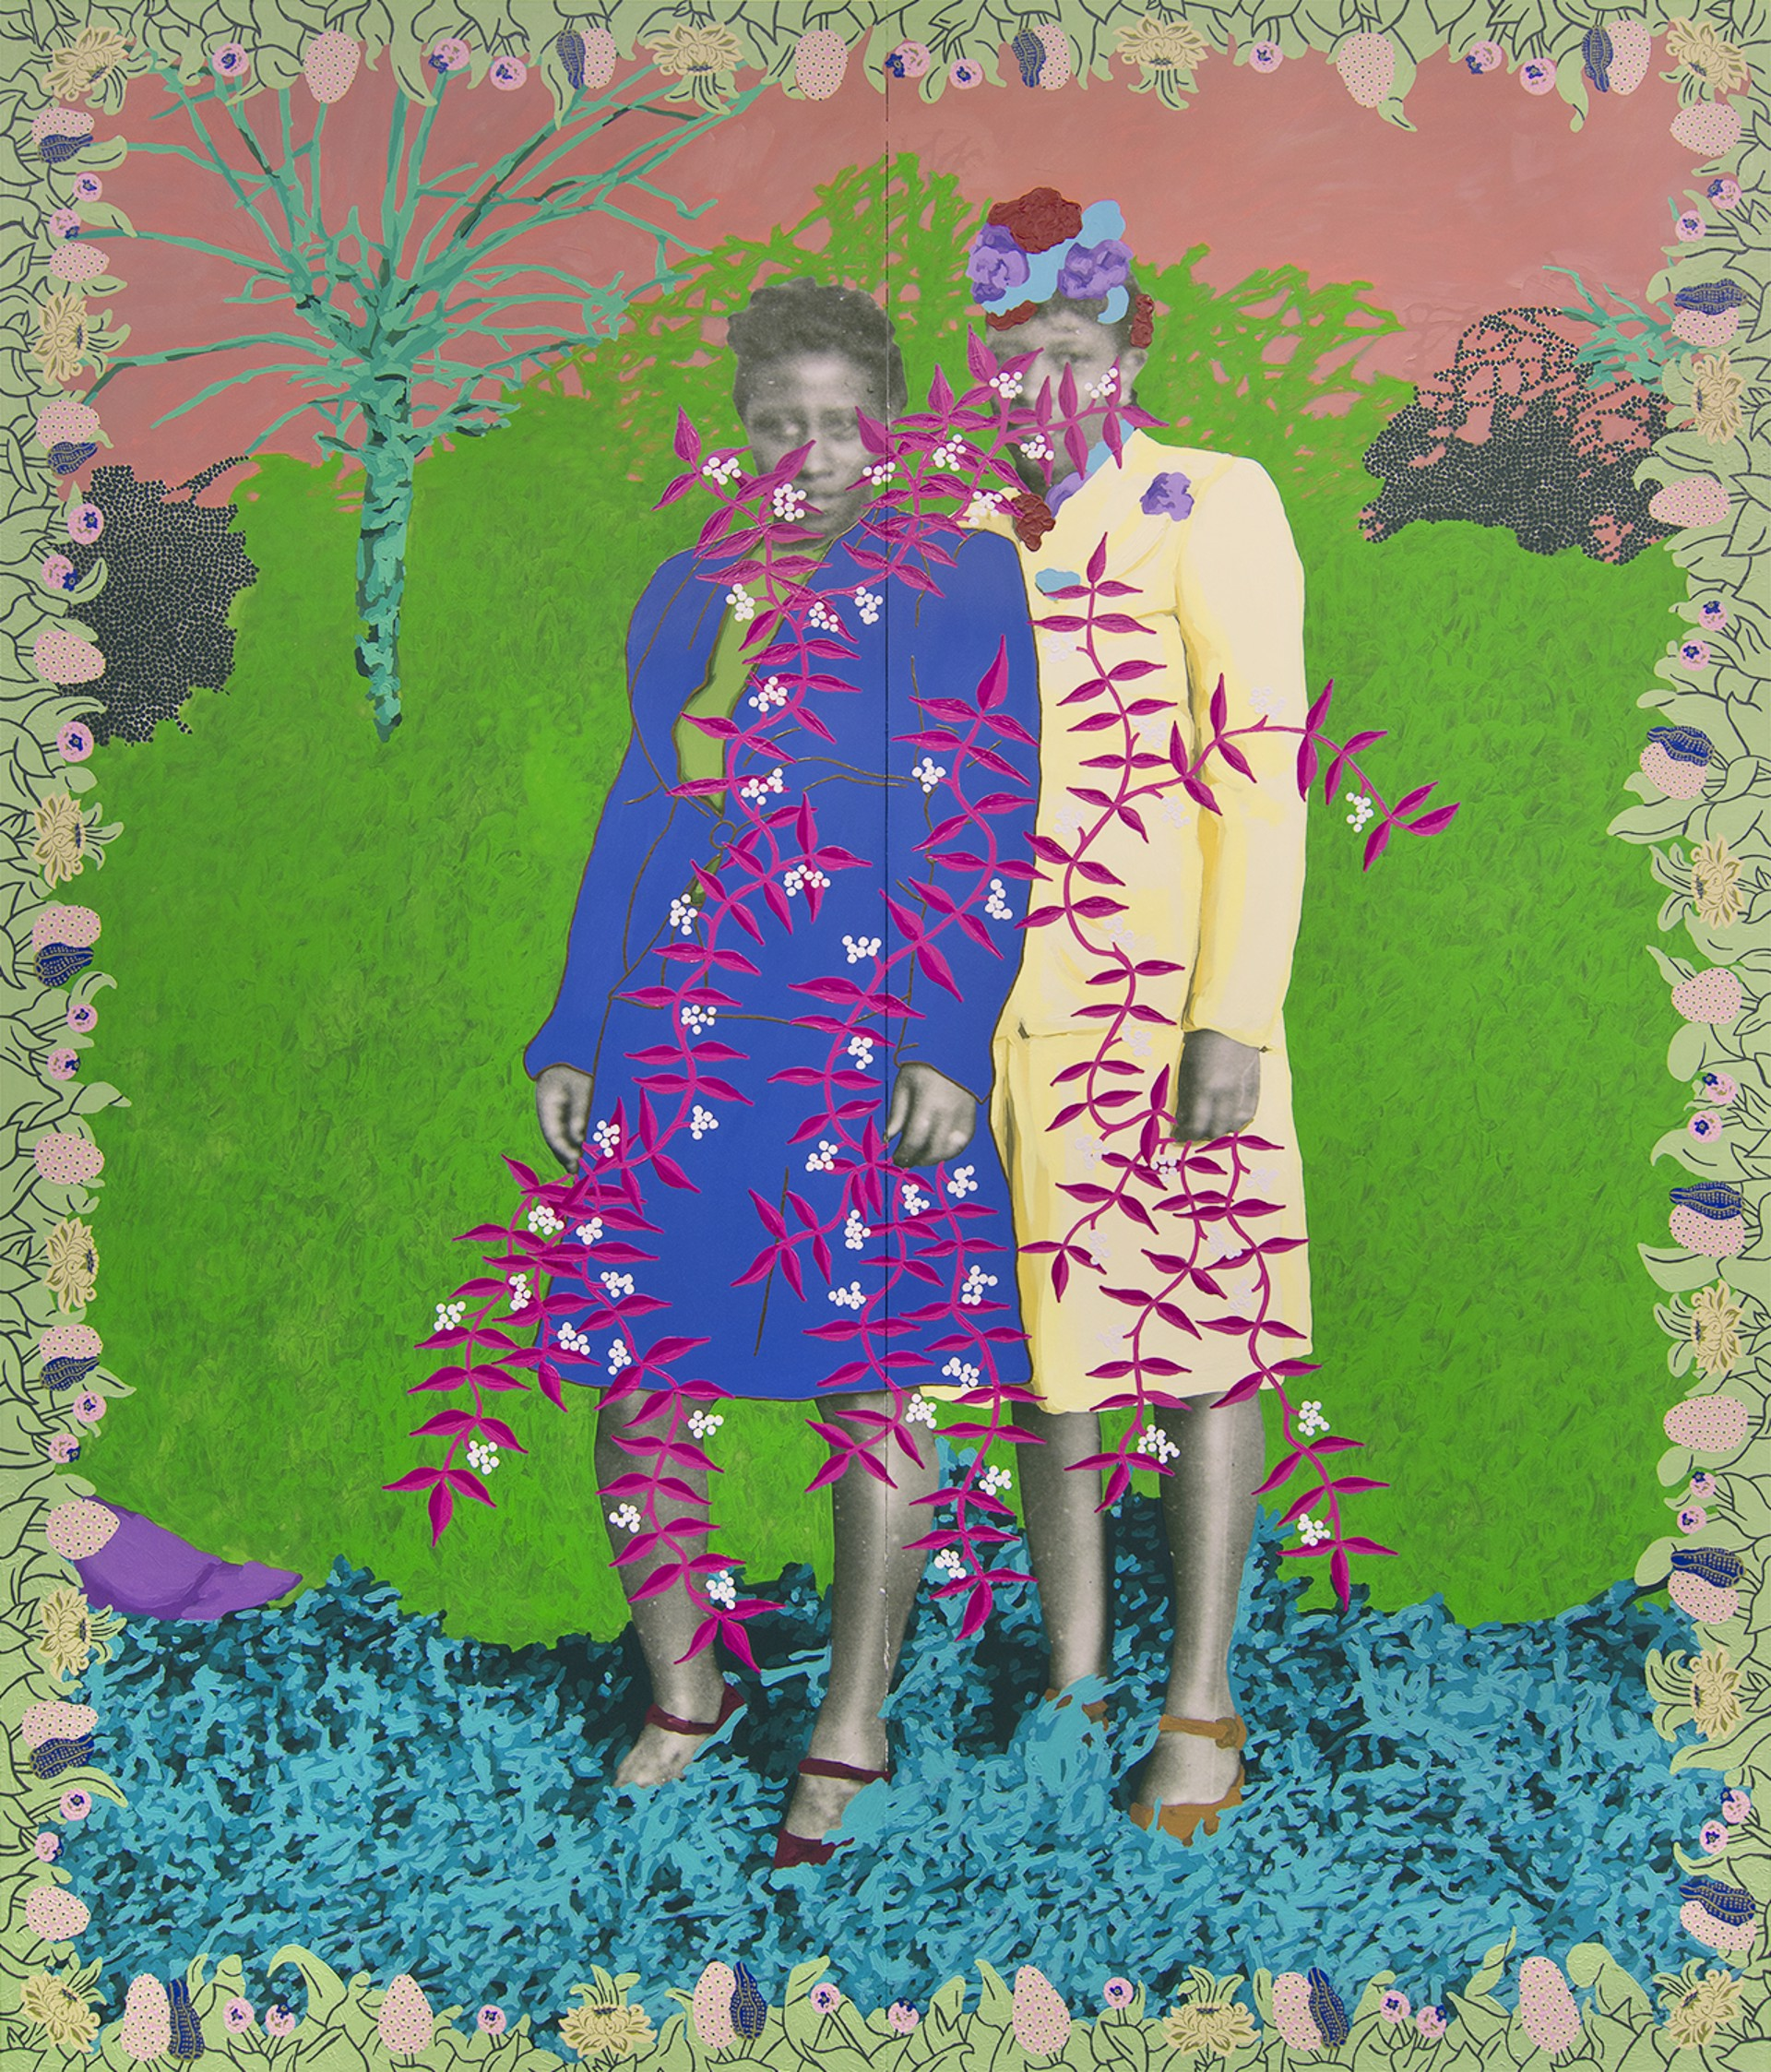 Untitled (Two Women with Floral Frame) by Daisy Patton